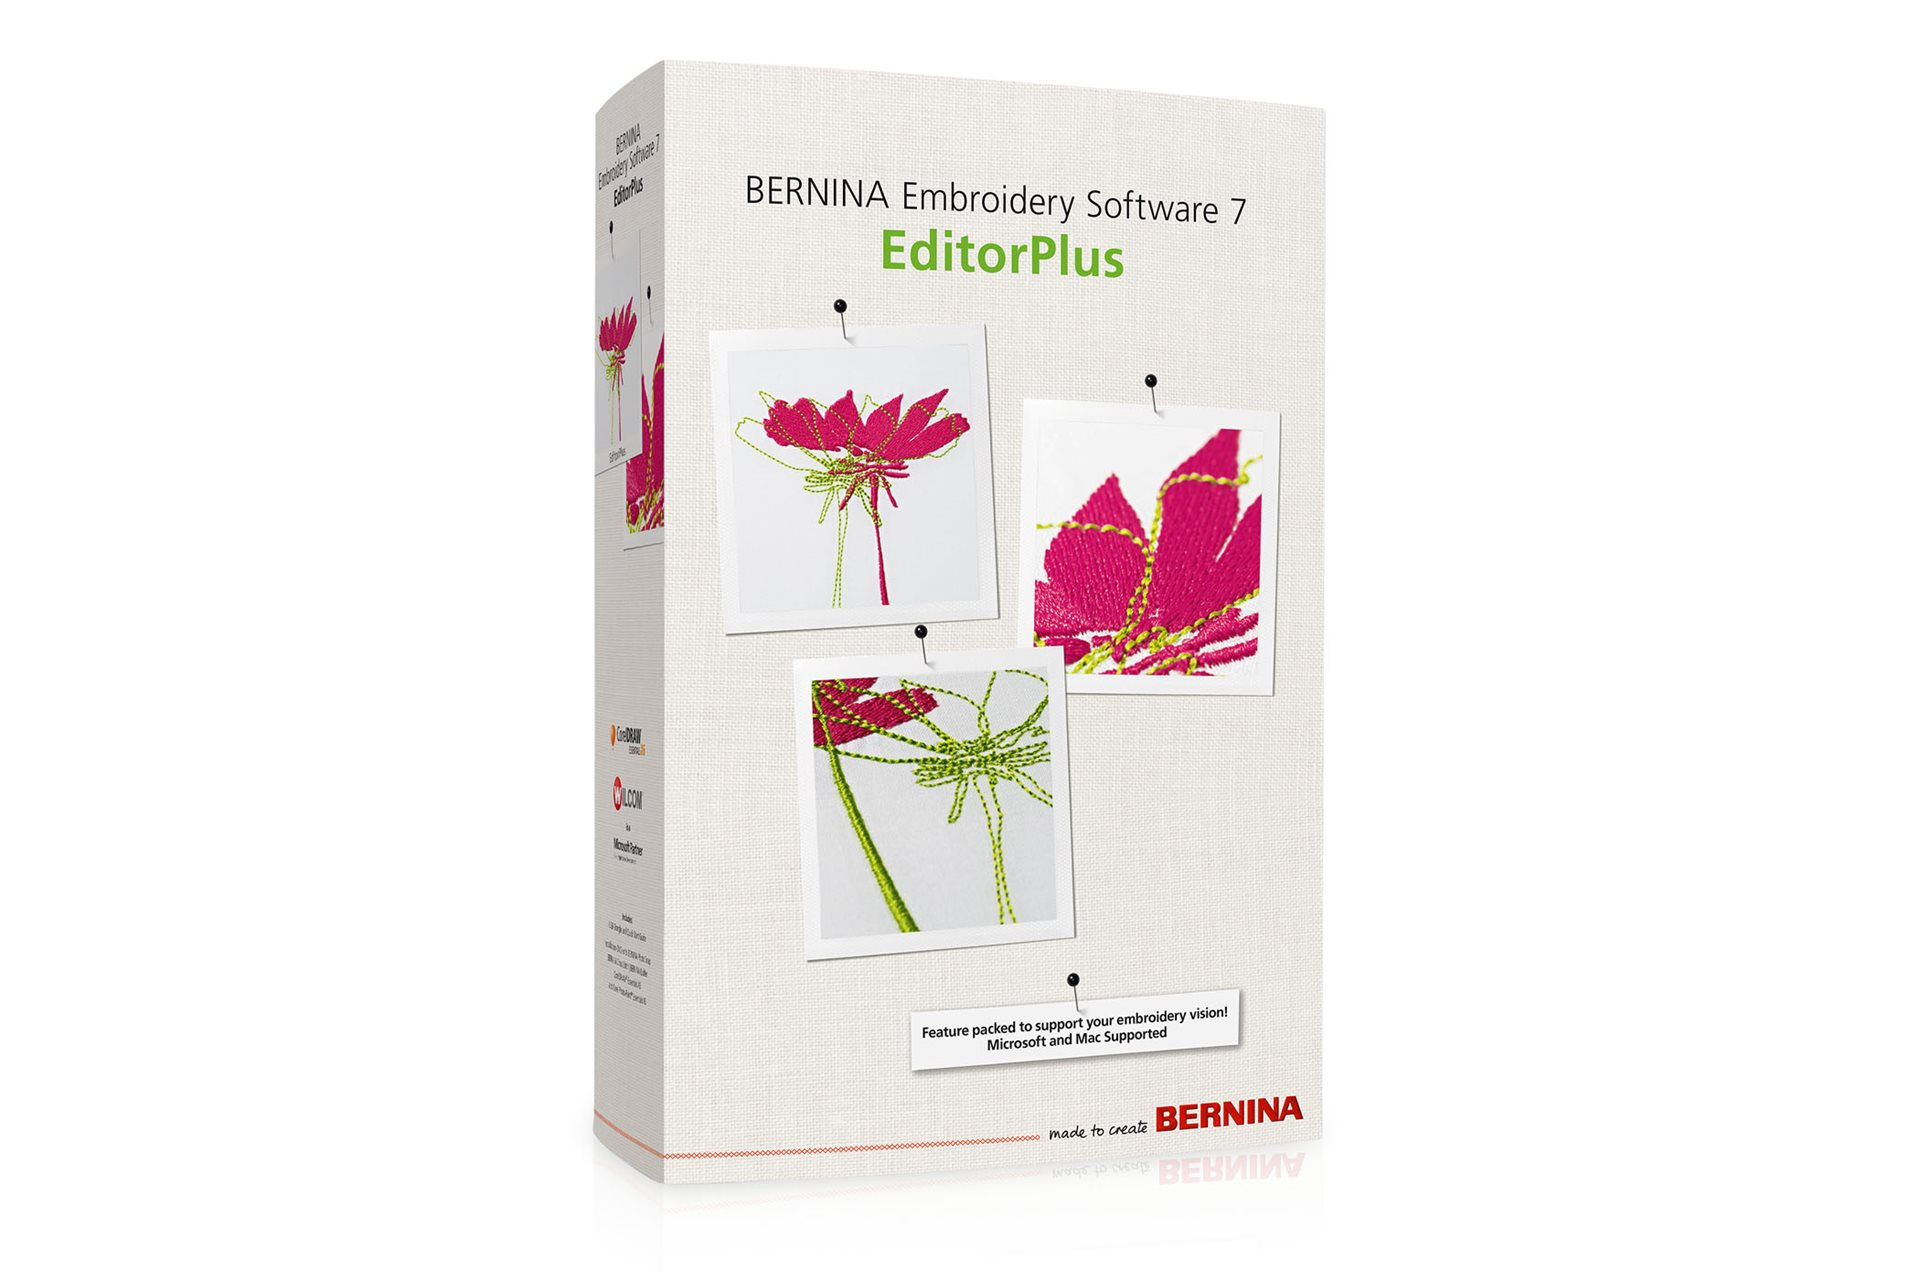 Sticksoftware Version 7 – EditorPlus